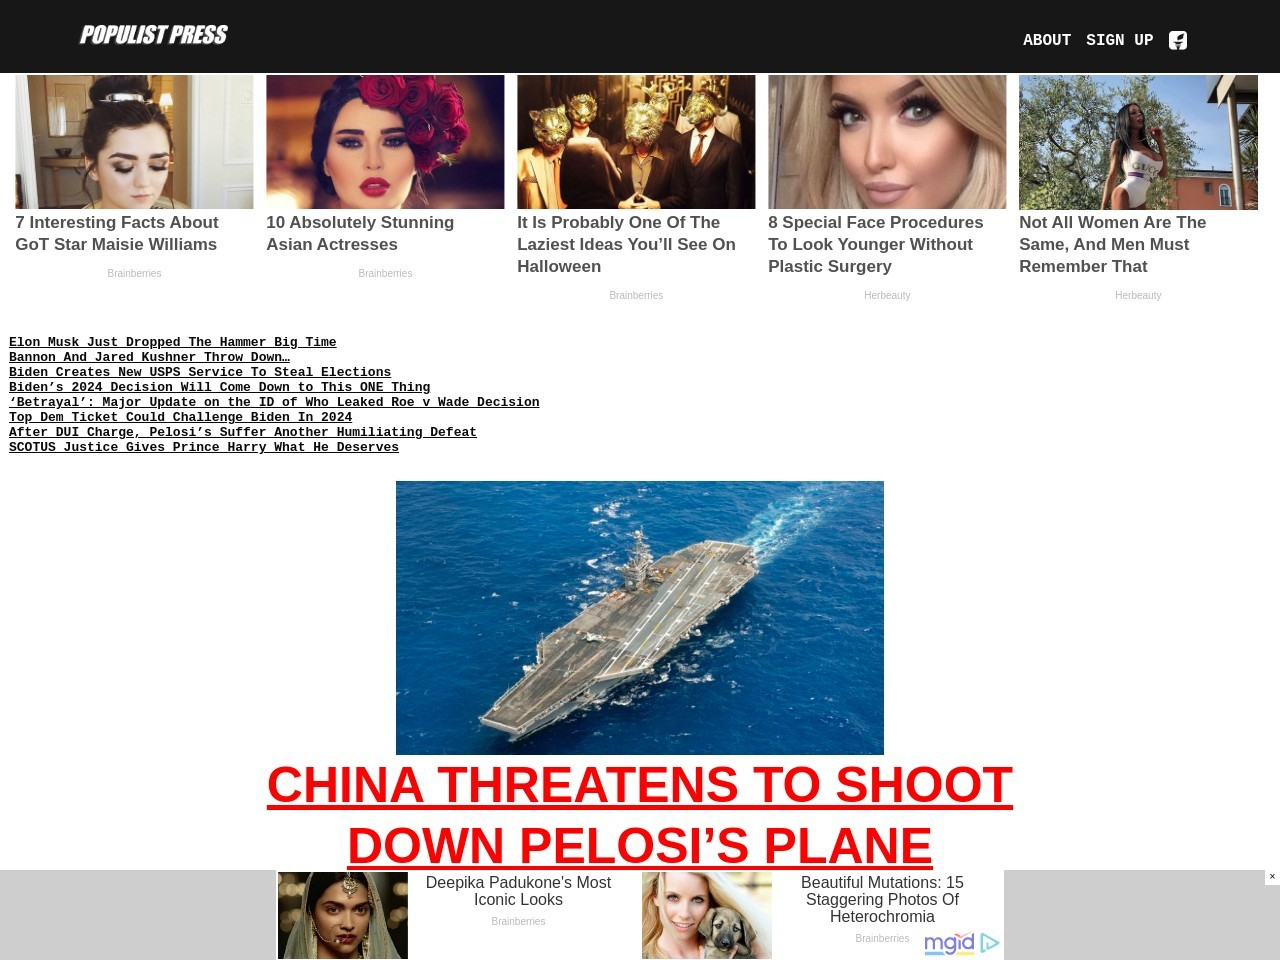 American Fighter Aircraft Support Coalition Strikes on ISIS in Iraq